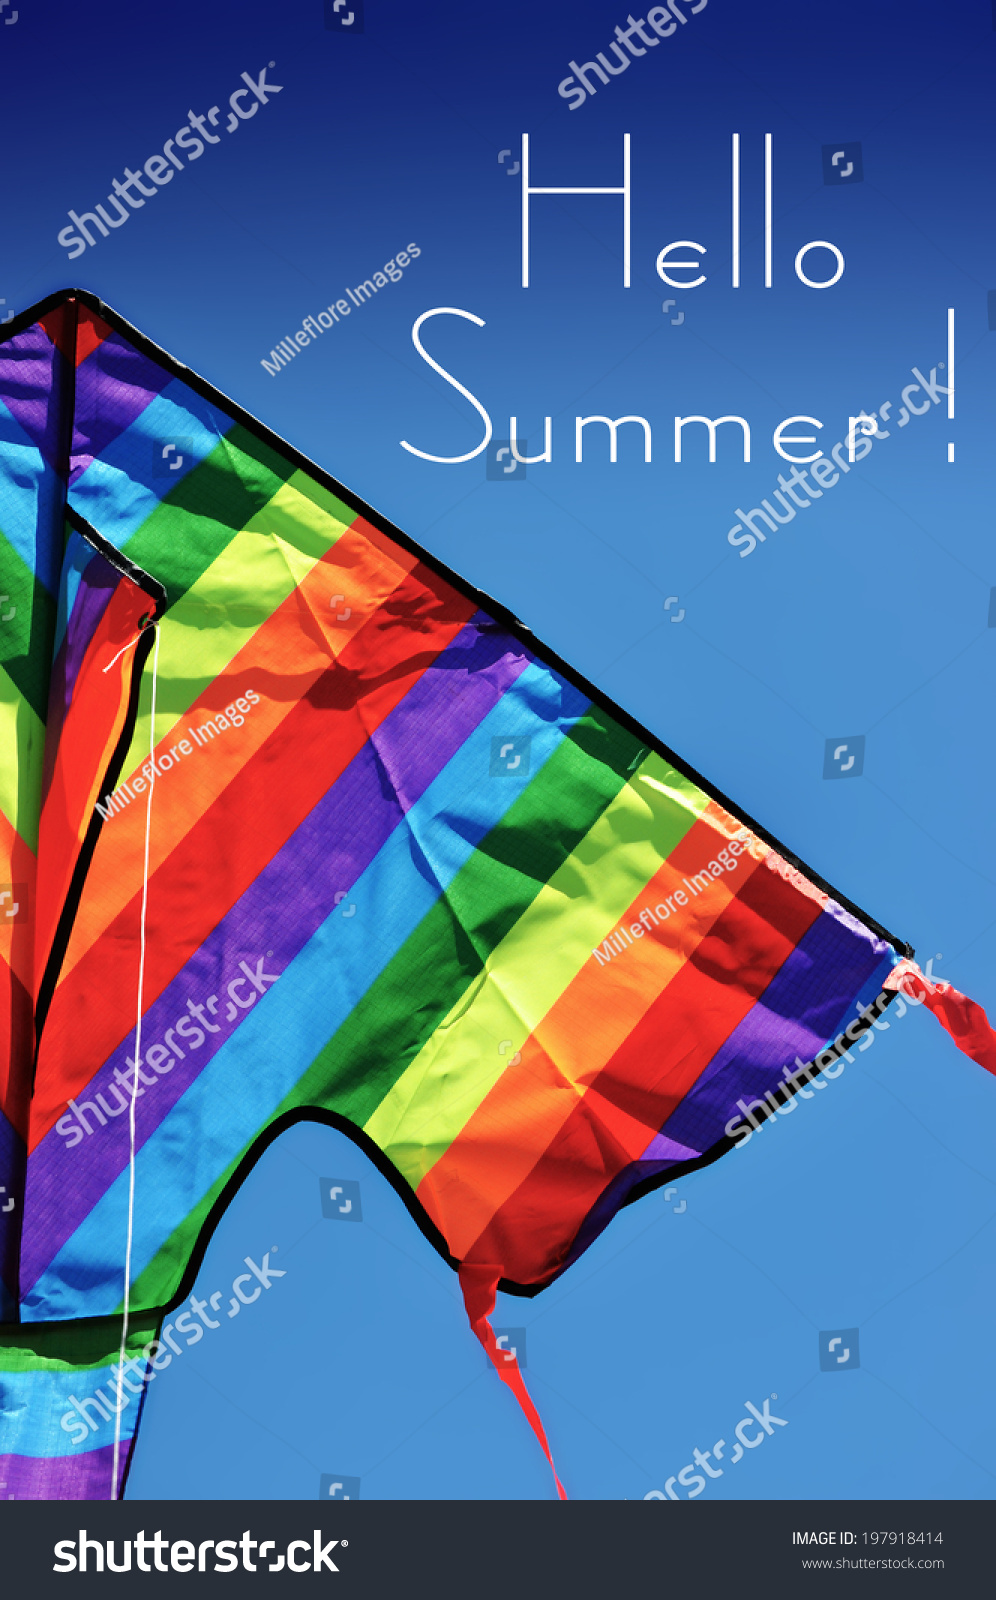 Hello Summer Sample Text With Bright Colorful Kite Flying High Over Blue Sky .